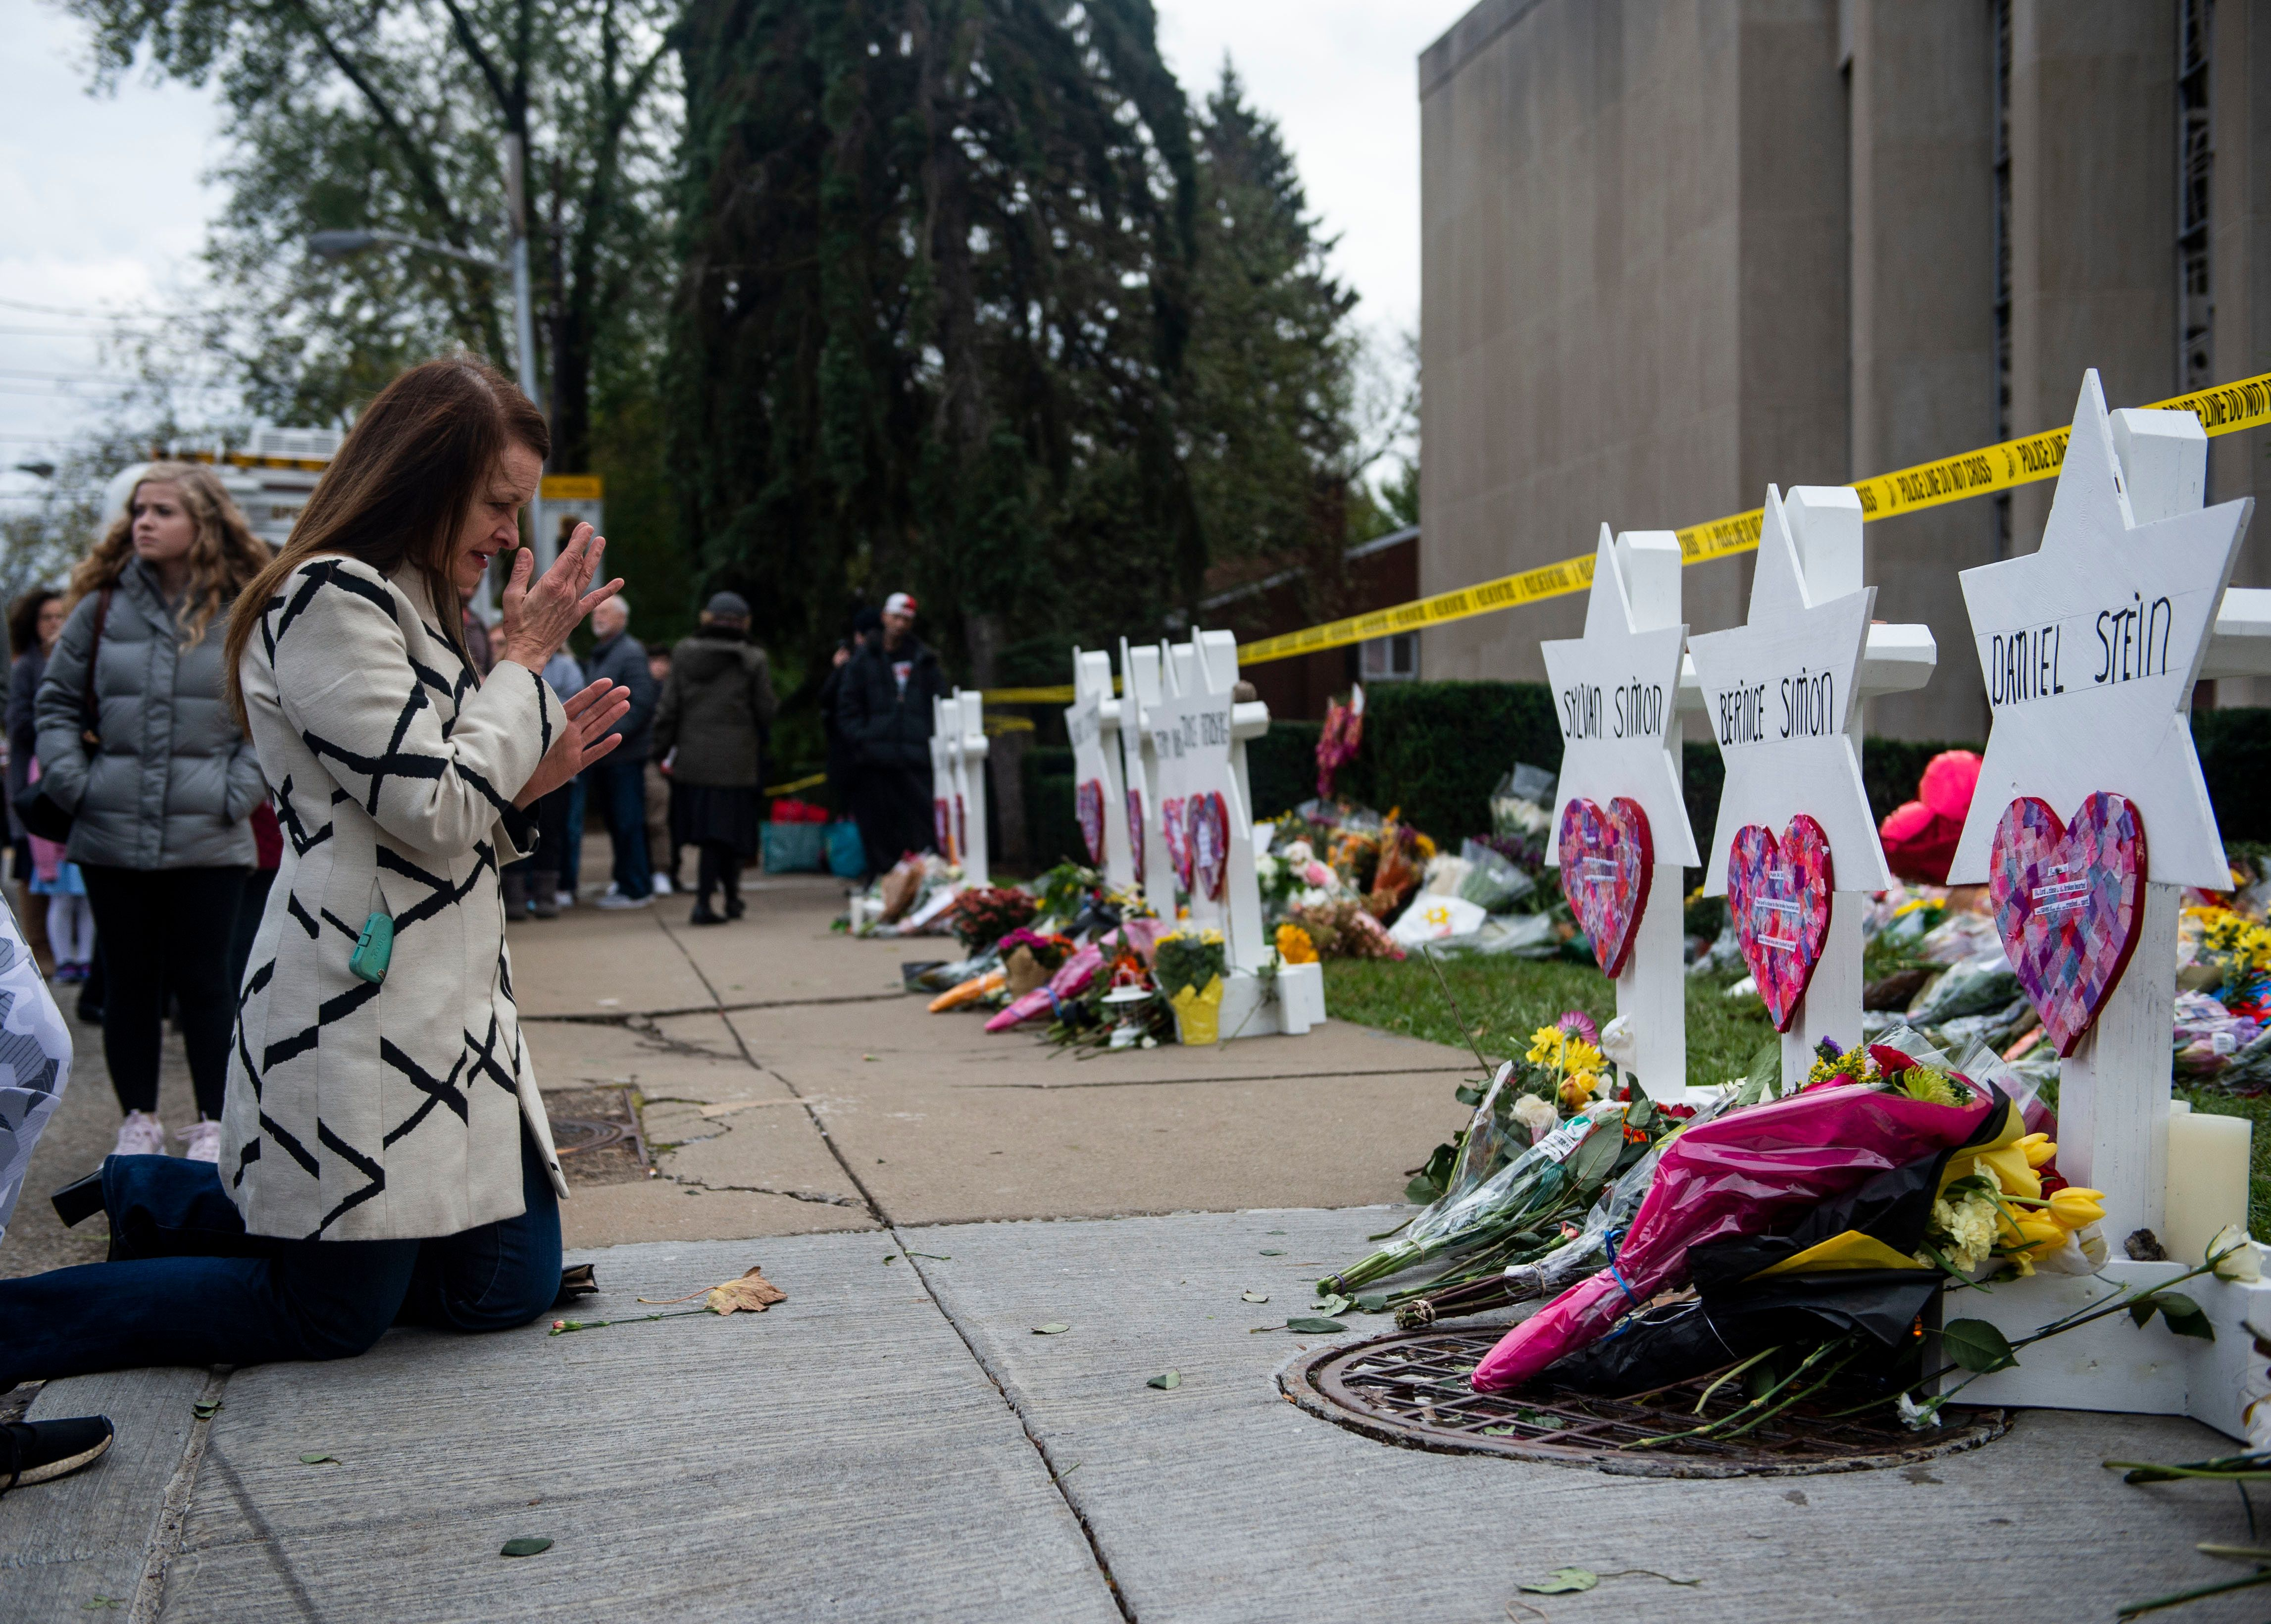 A woman prays outside the Tree of Life synagogue in Pittsburgh, where a white supremacist killed 11 people.